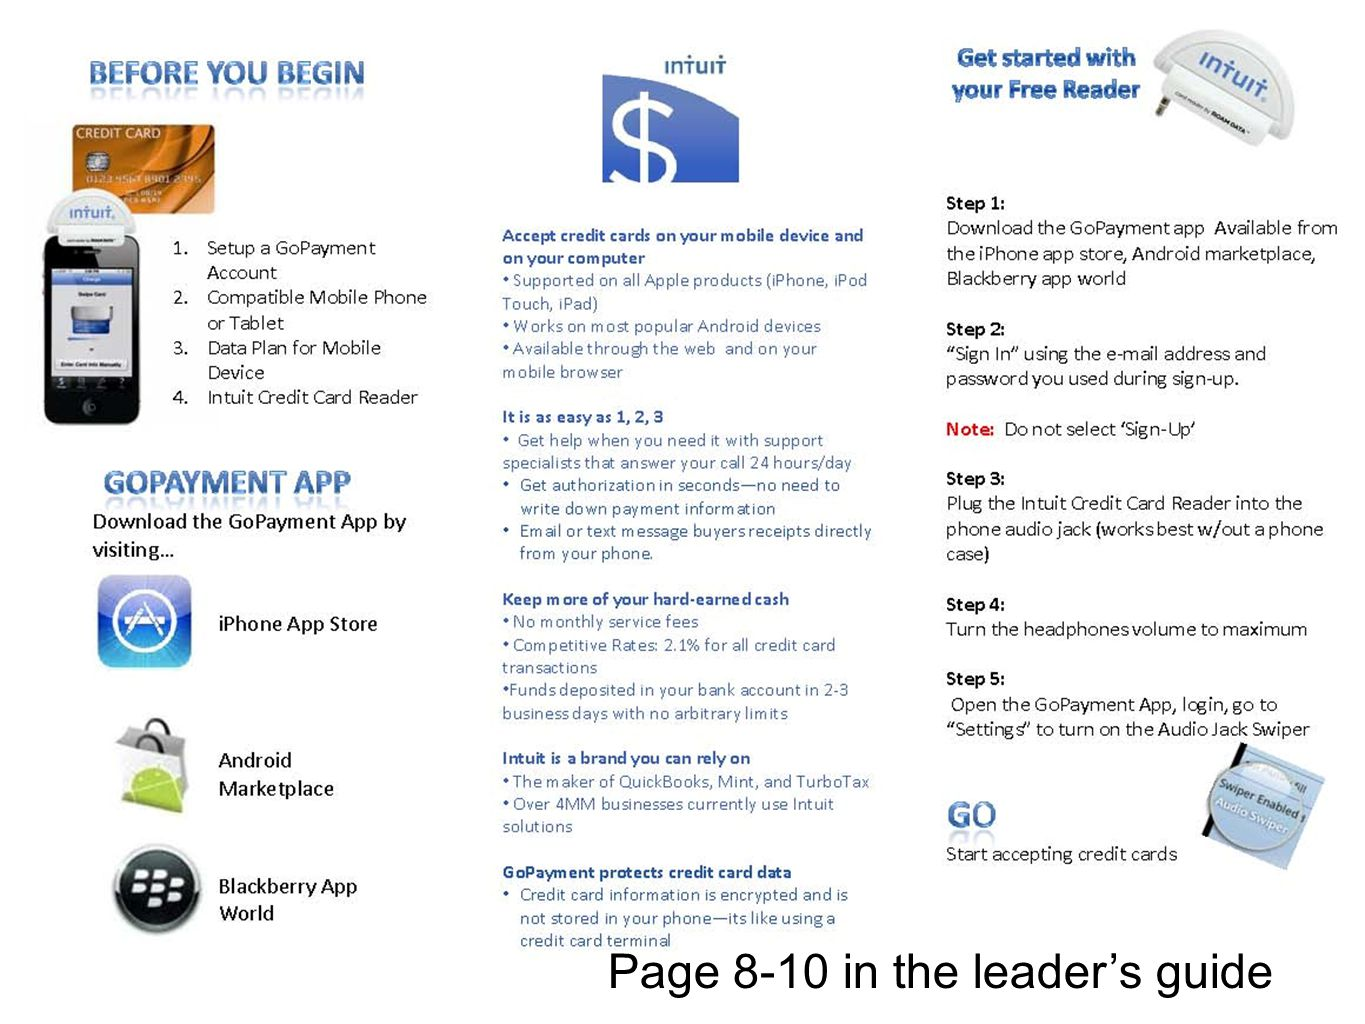 Page 8-10 in the leaders guide